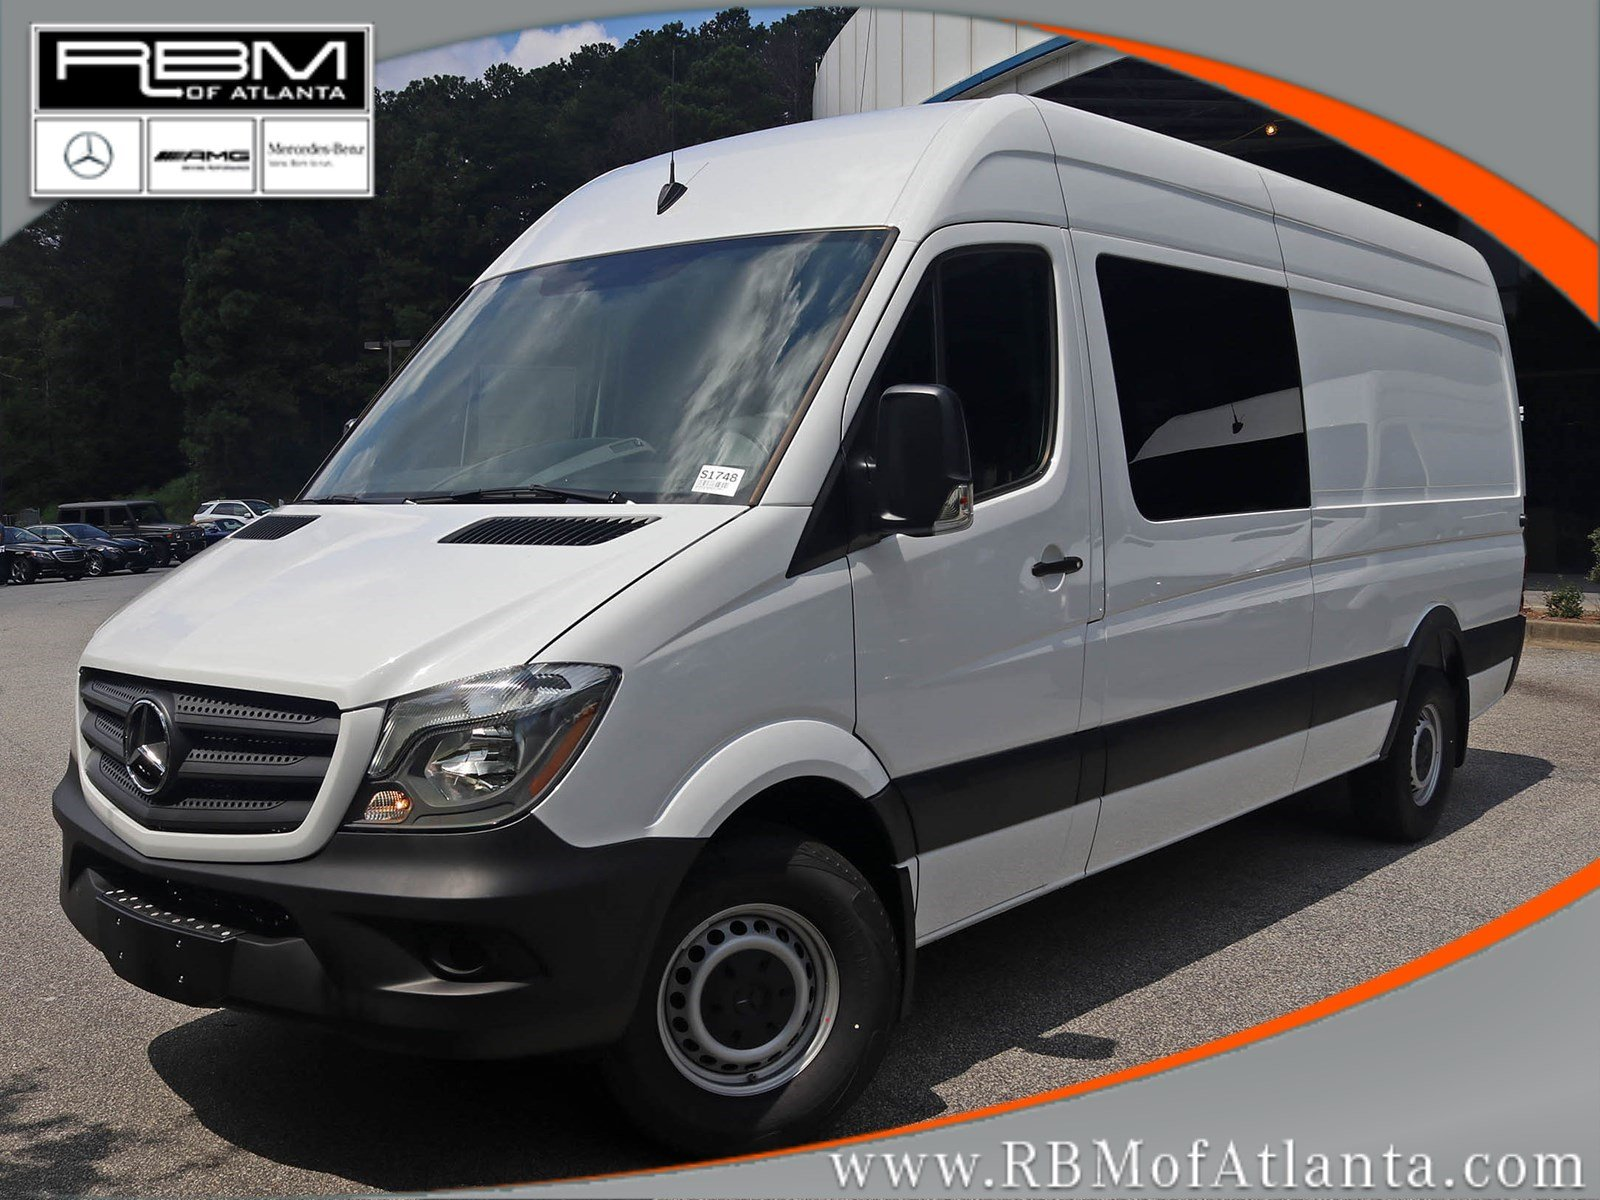 New 2017 mercedes benz sprinter 2500 crew van crew van in for Mercedes benz customer service email address